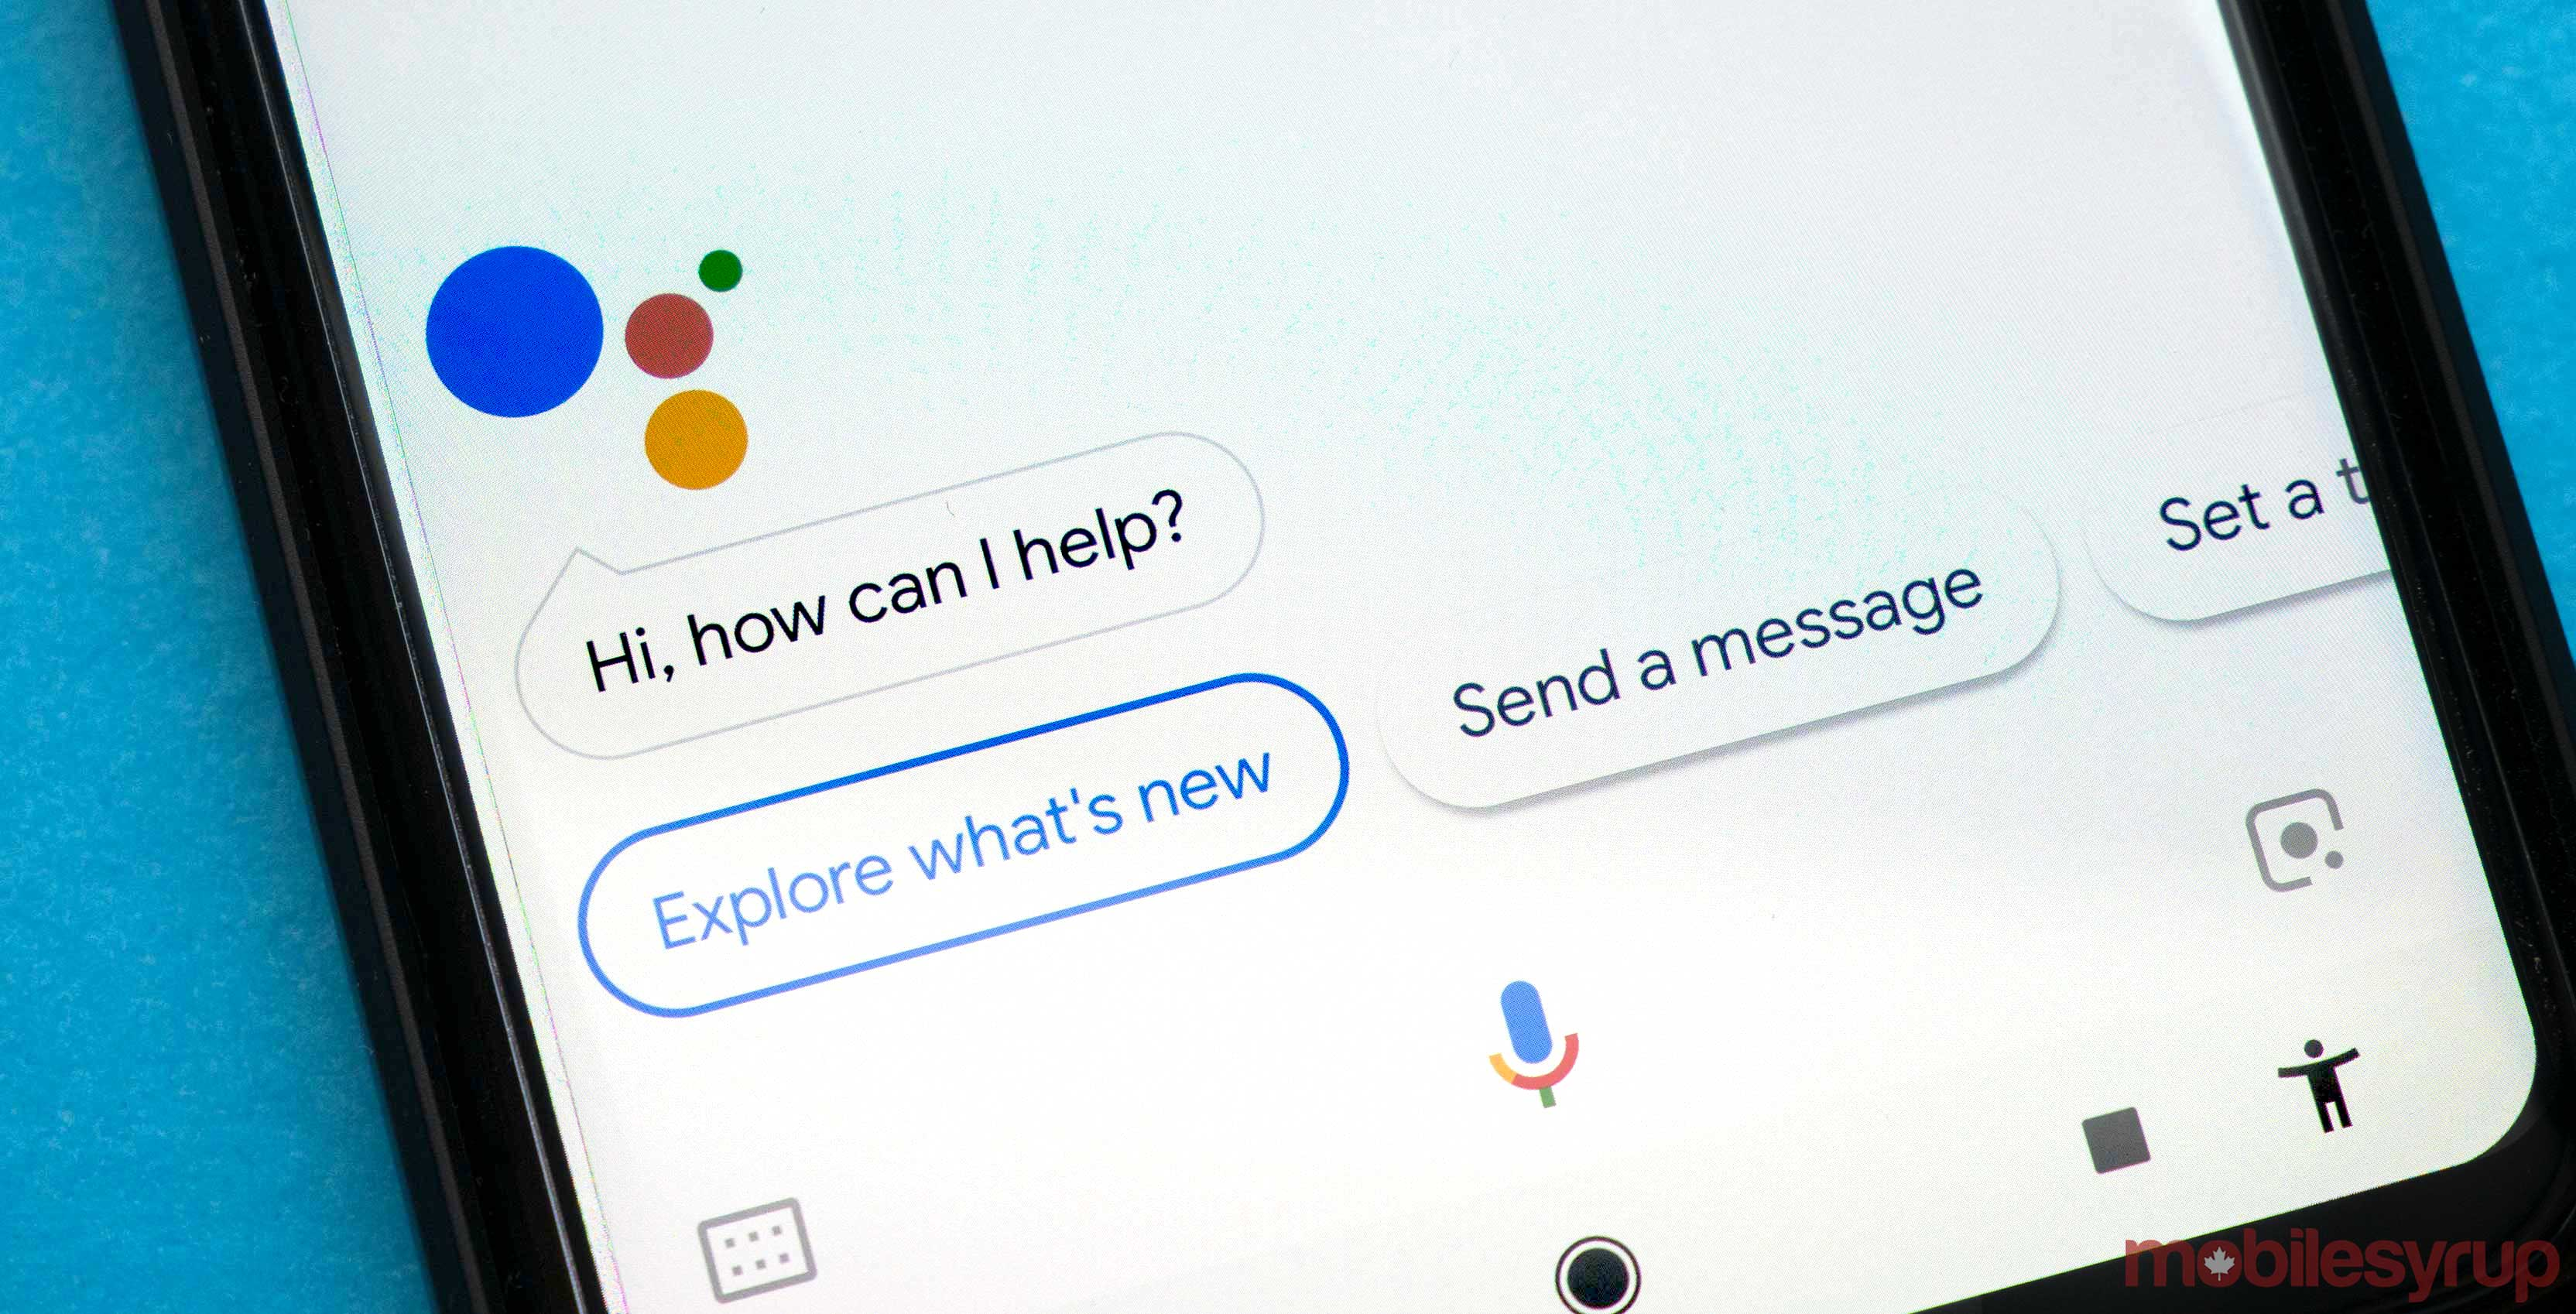 Google Assistant Gets Dedicated Button, Voice Typing in KaiOS & Messages Integration